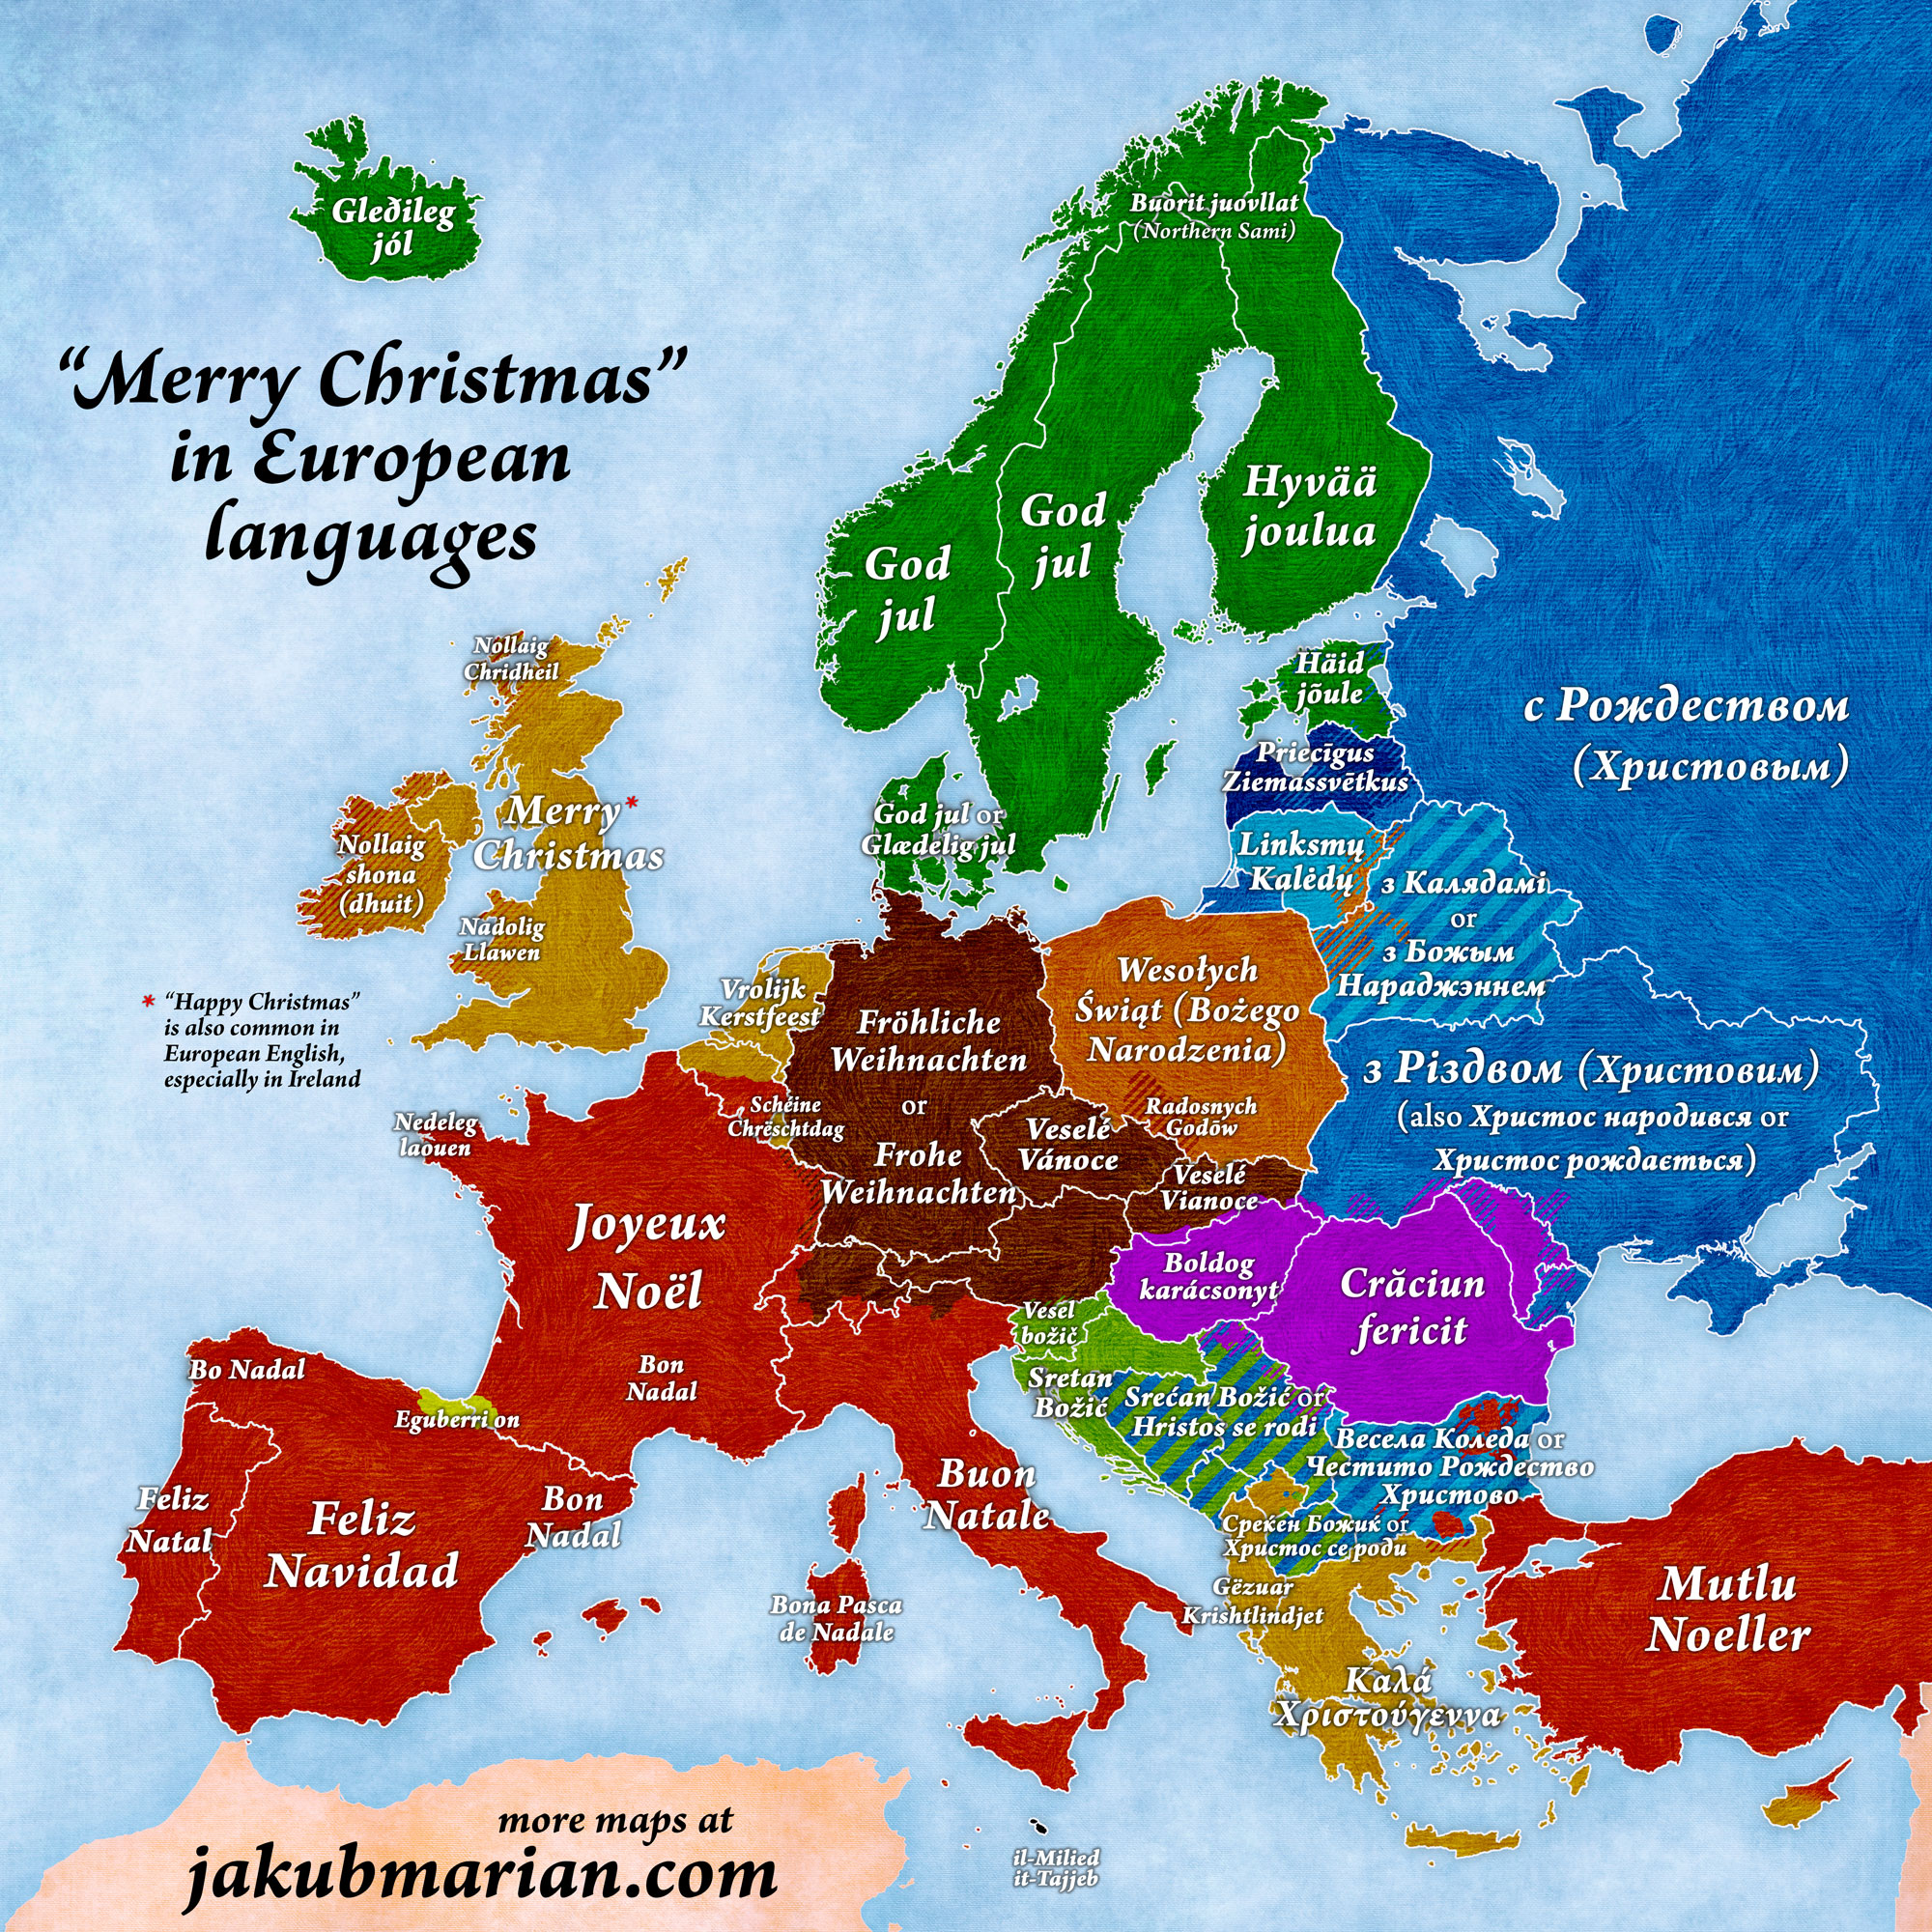 Merry Christmas' in European languages